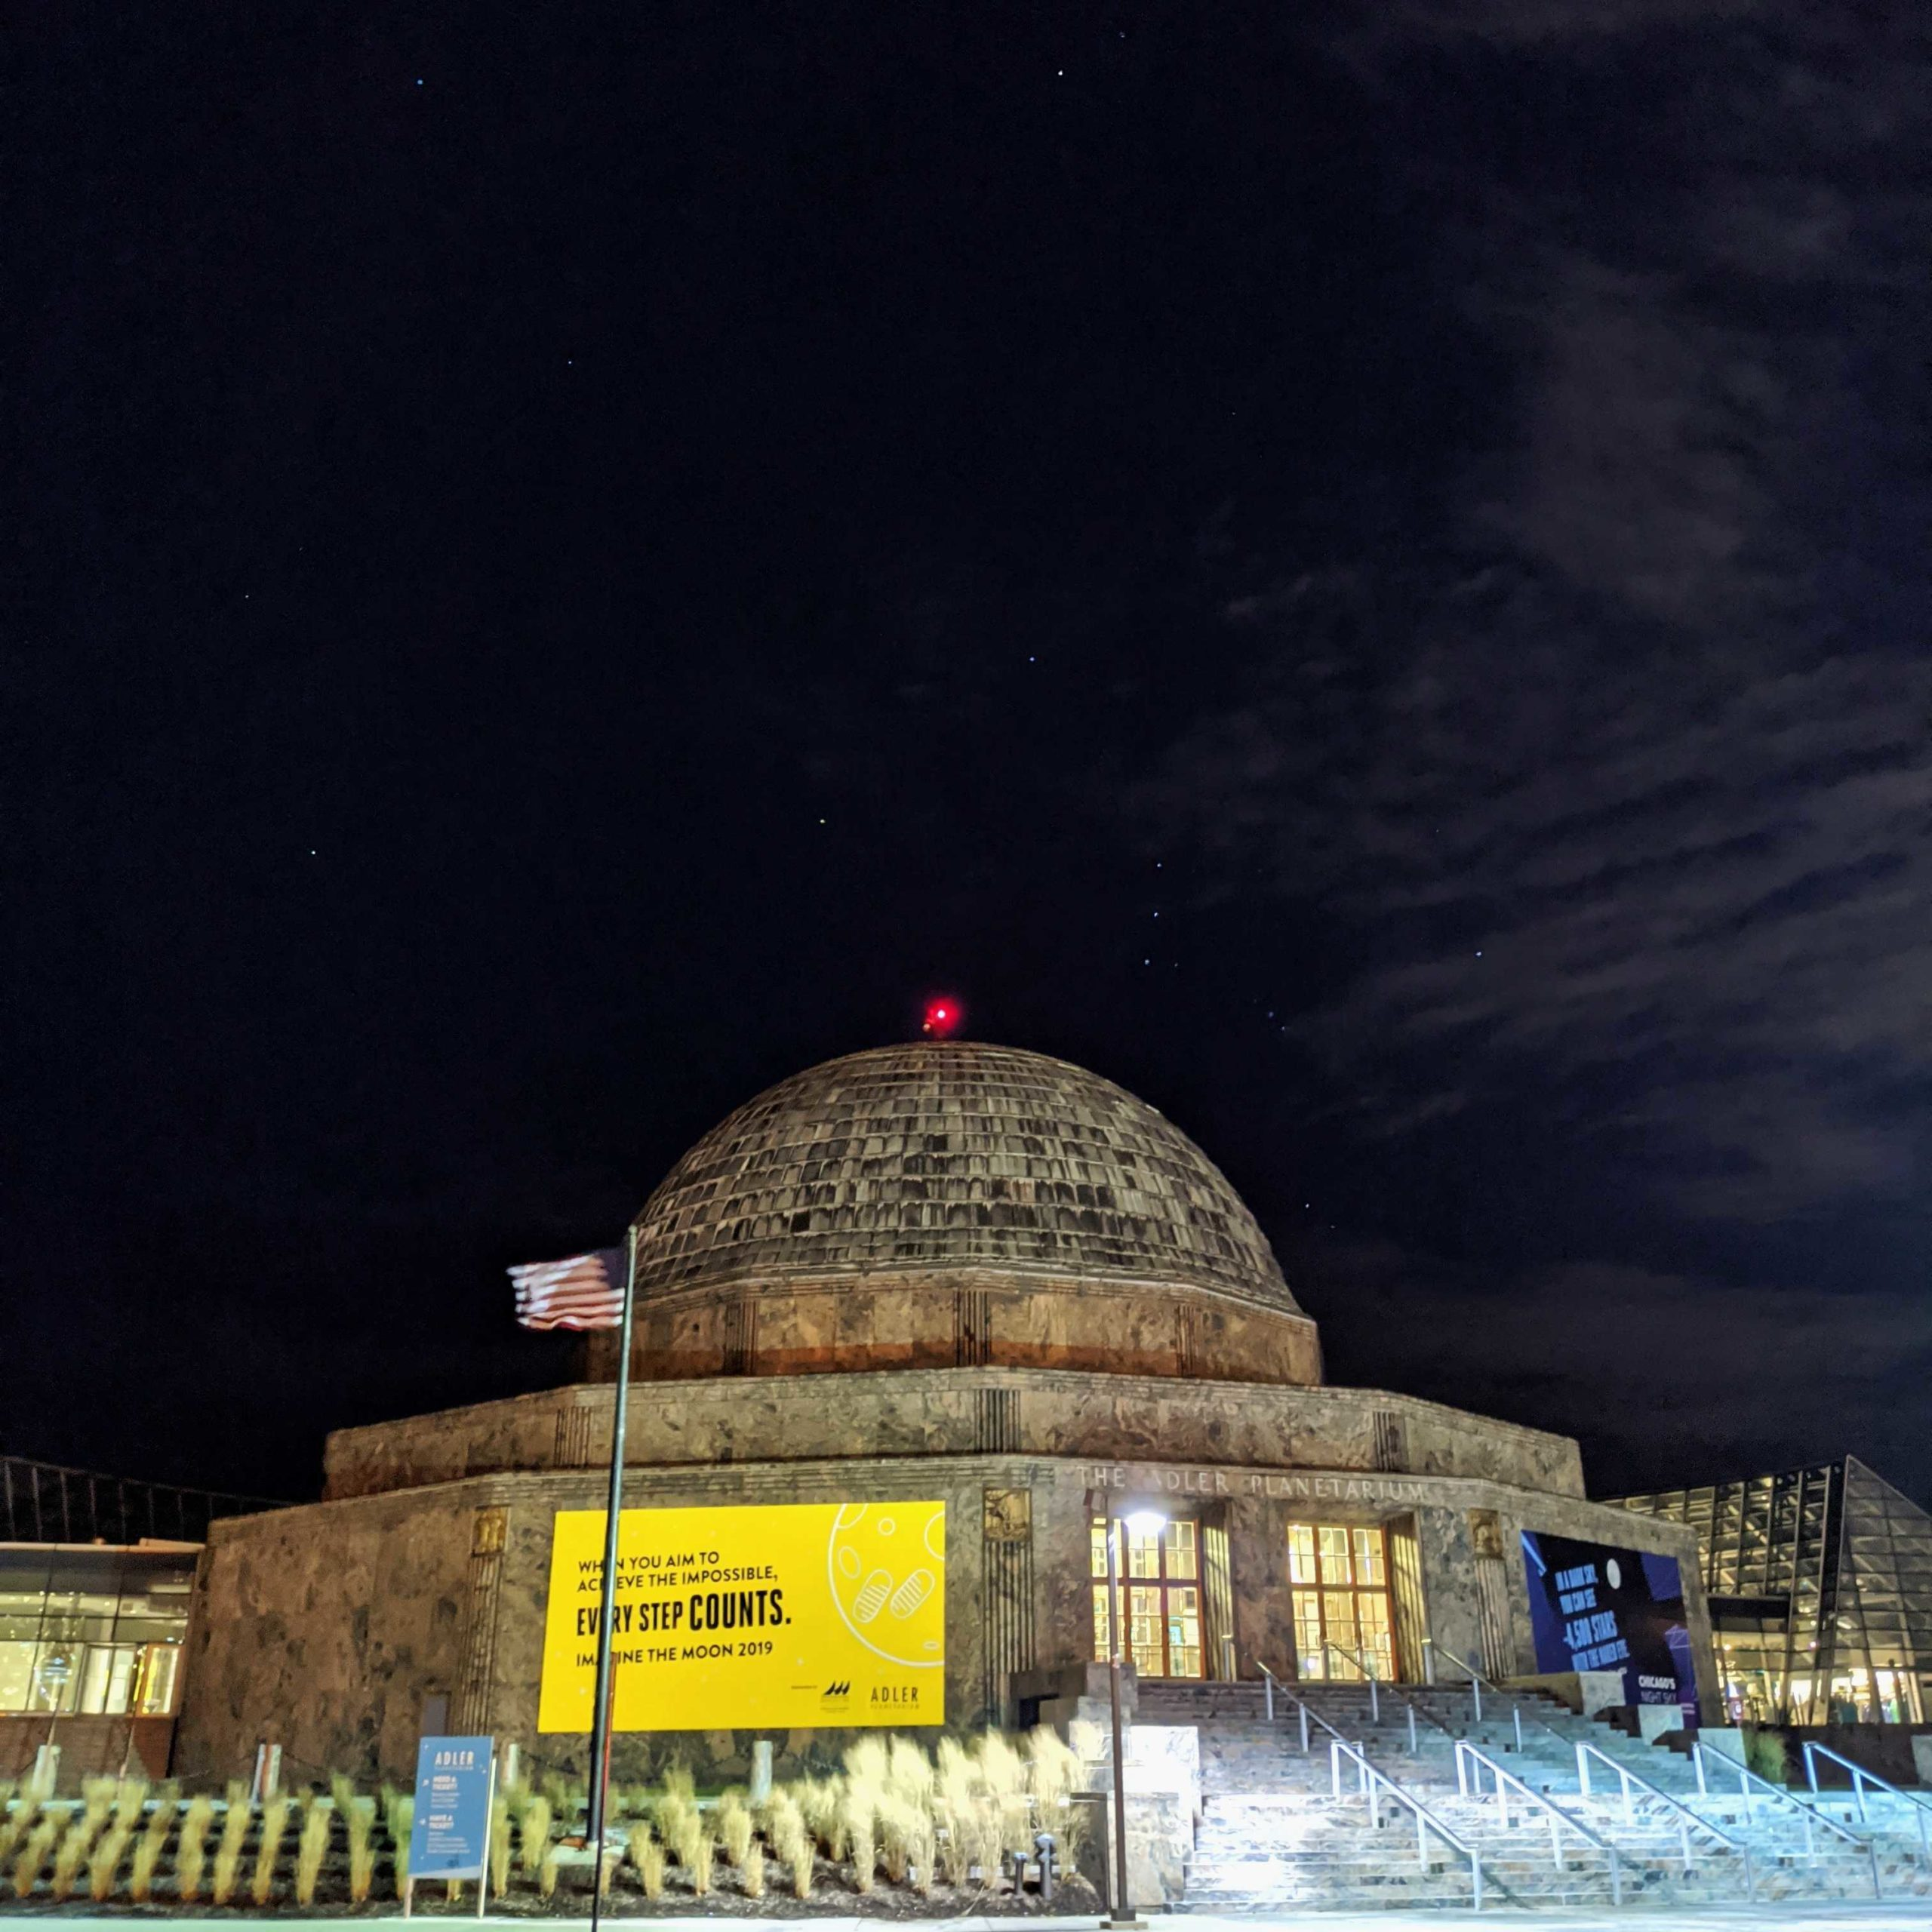 The Adler Planetarium at night with the constellation Orion shining in the sky.